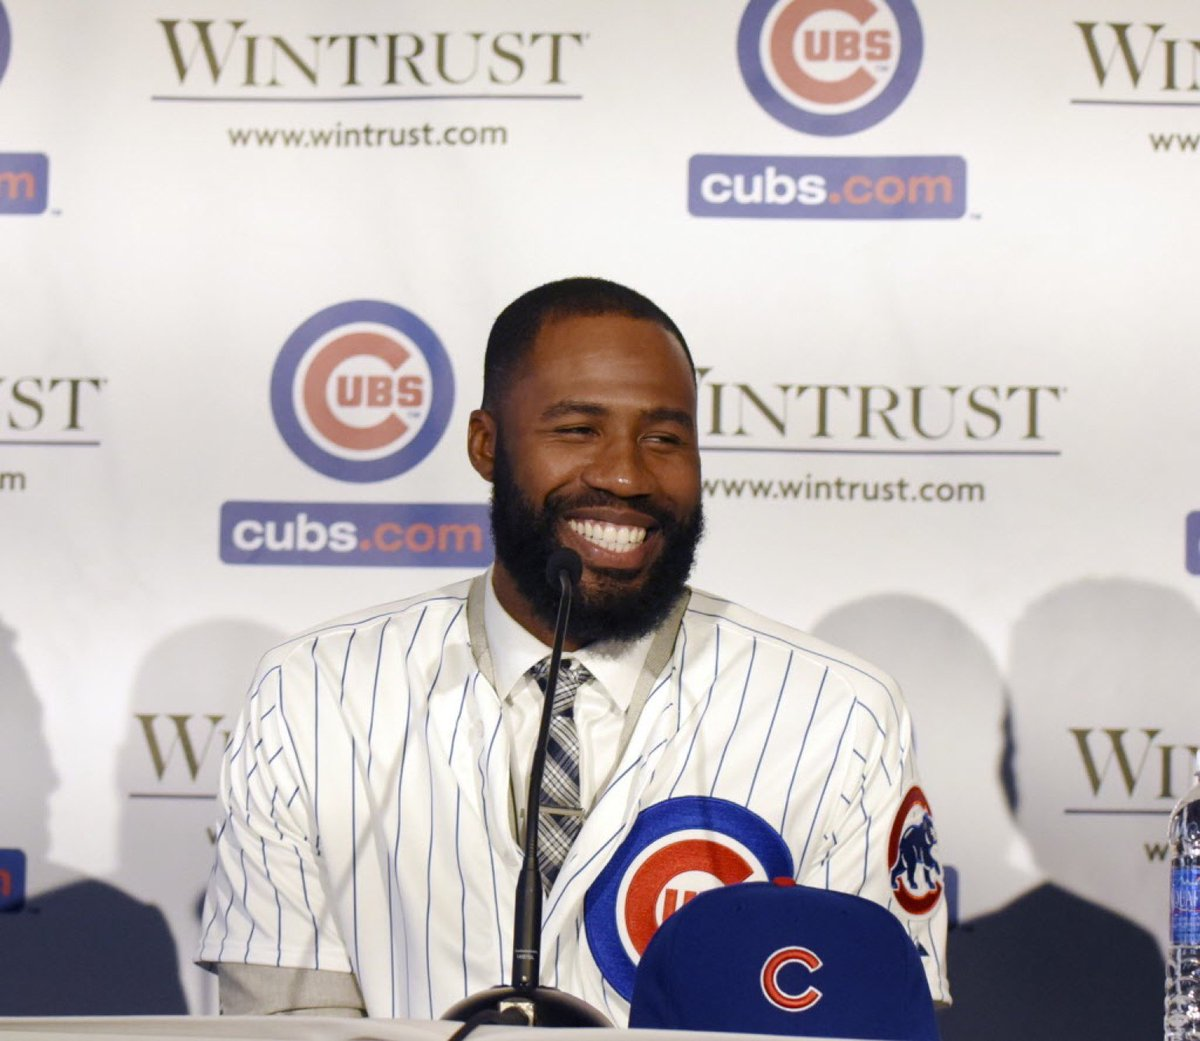 One more of Jason Heyward  #Cubs  Photo by David Banks, Getty Images https://t.co/jlbUAukTqN